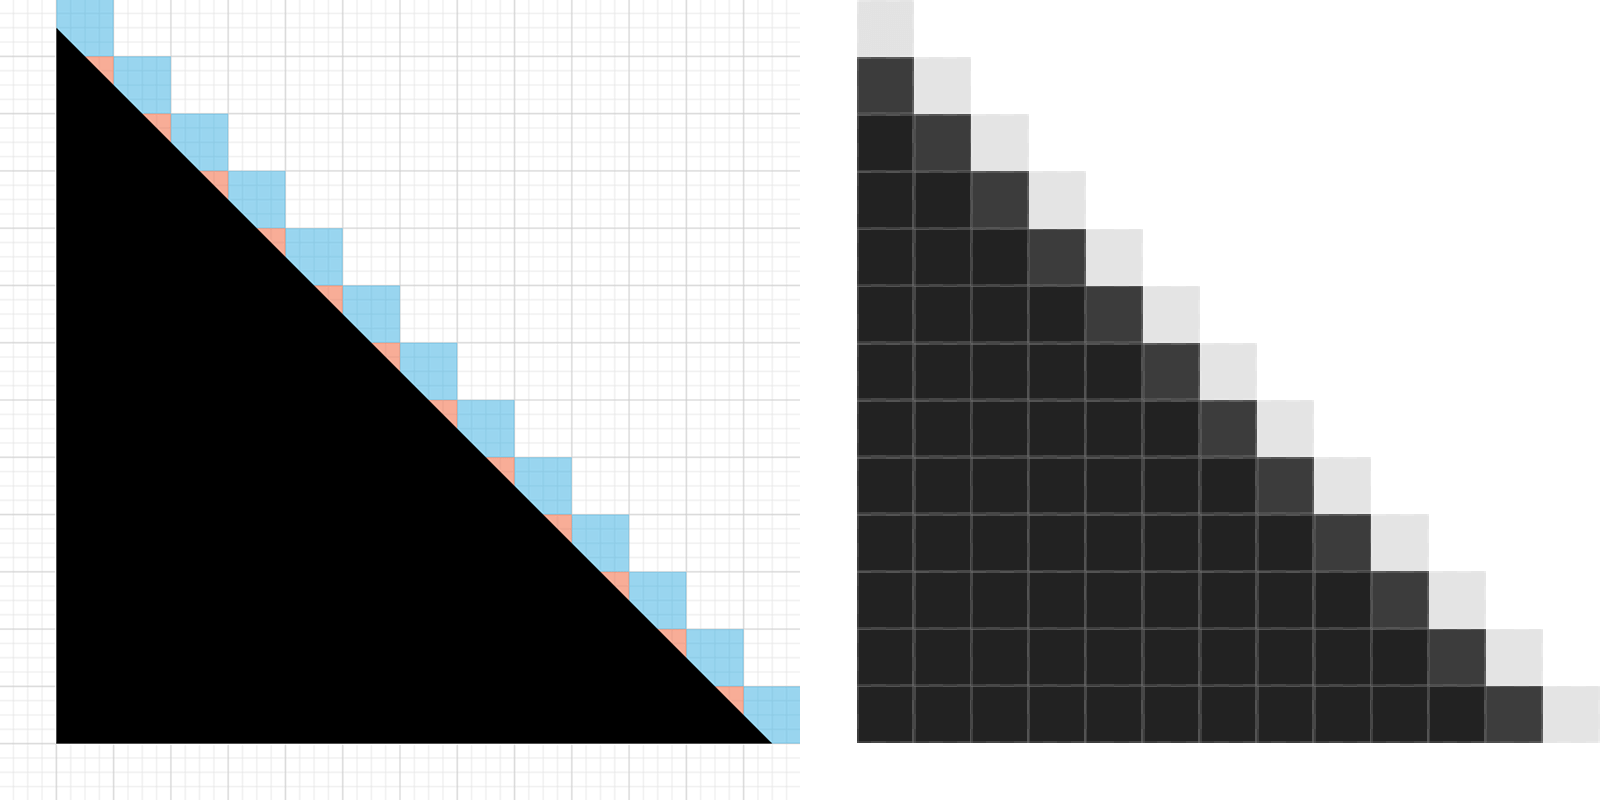 Vector design splits pixel directly in half, causing image pixels to render blurred at 50% gray.